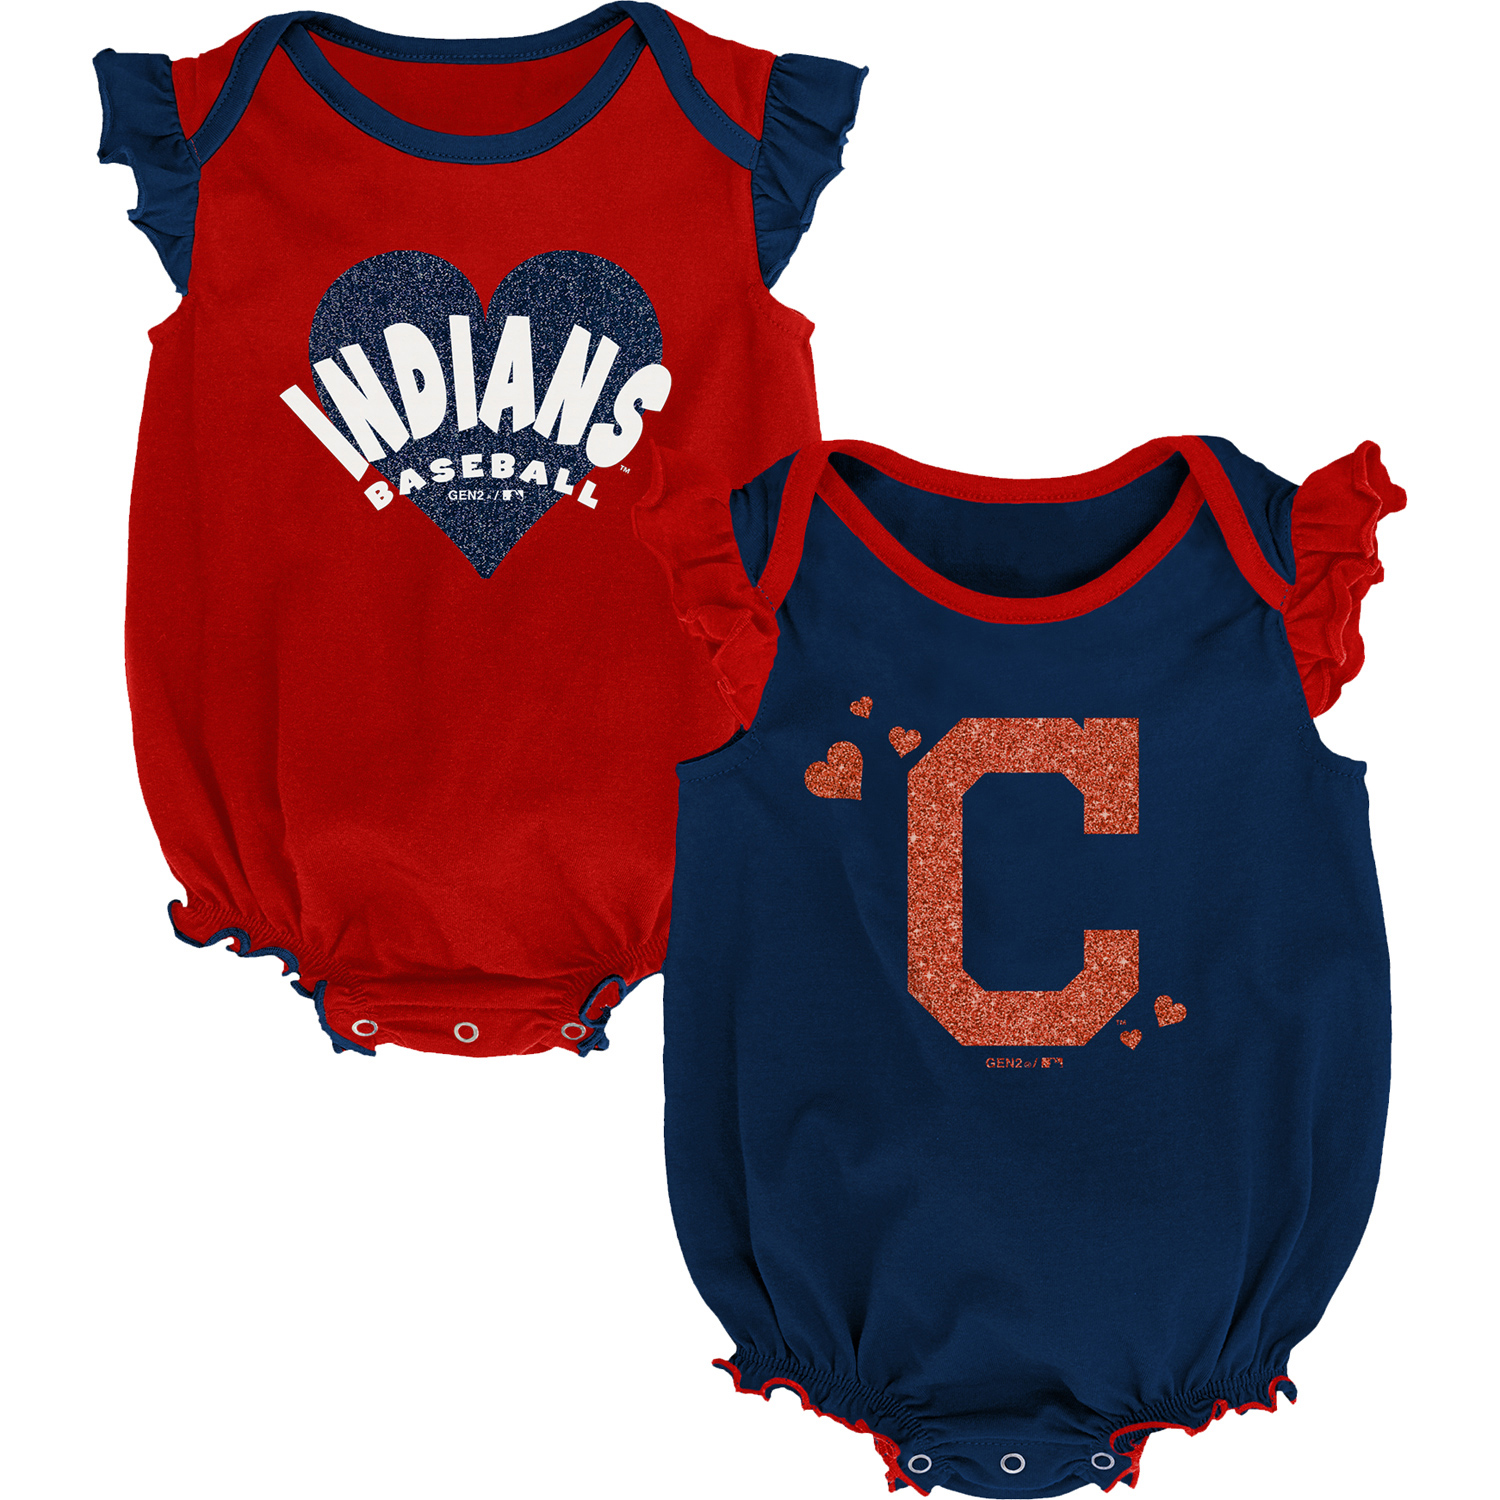 Cleveland Indians Girls Newborn & Infant Double Trouble Two-Pack Bodysuit Set - Navy/Red